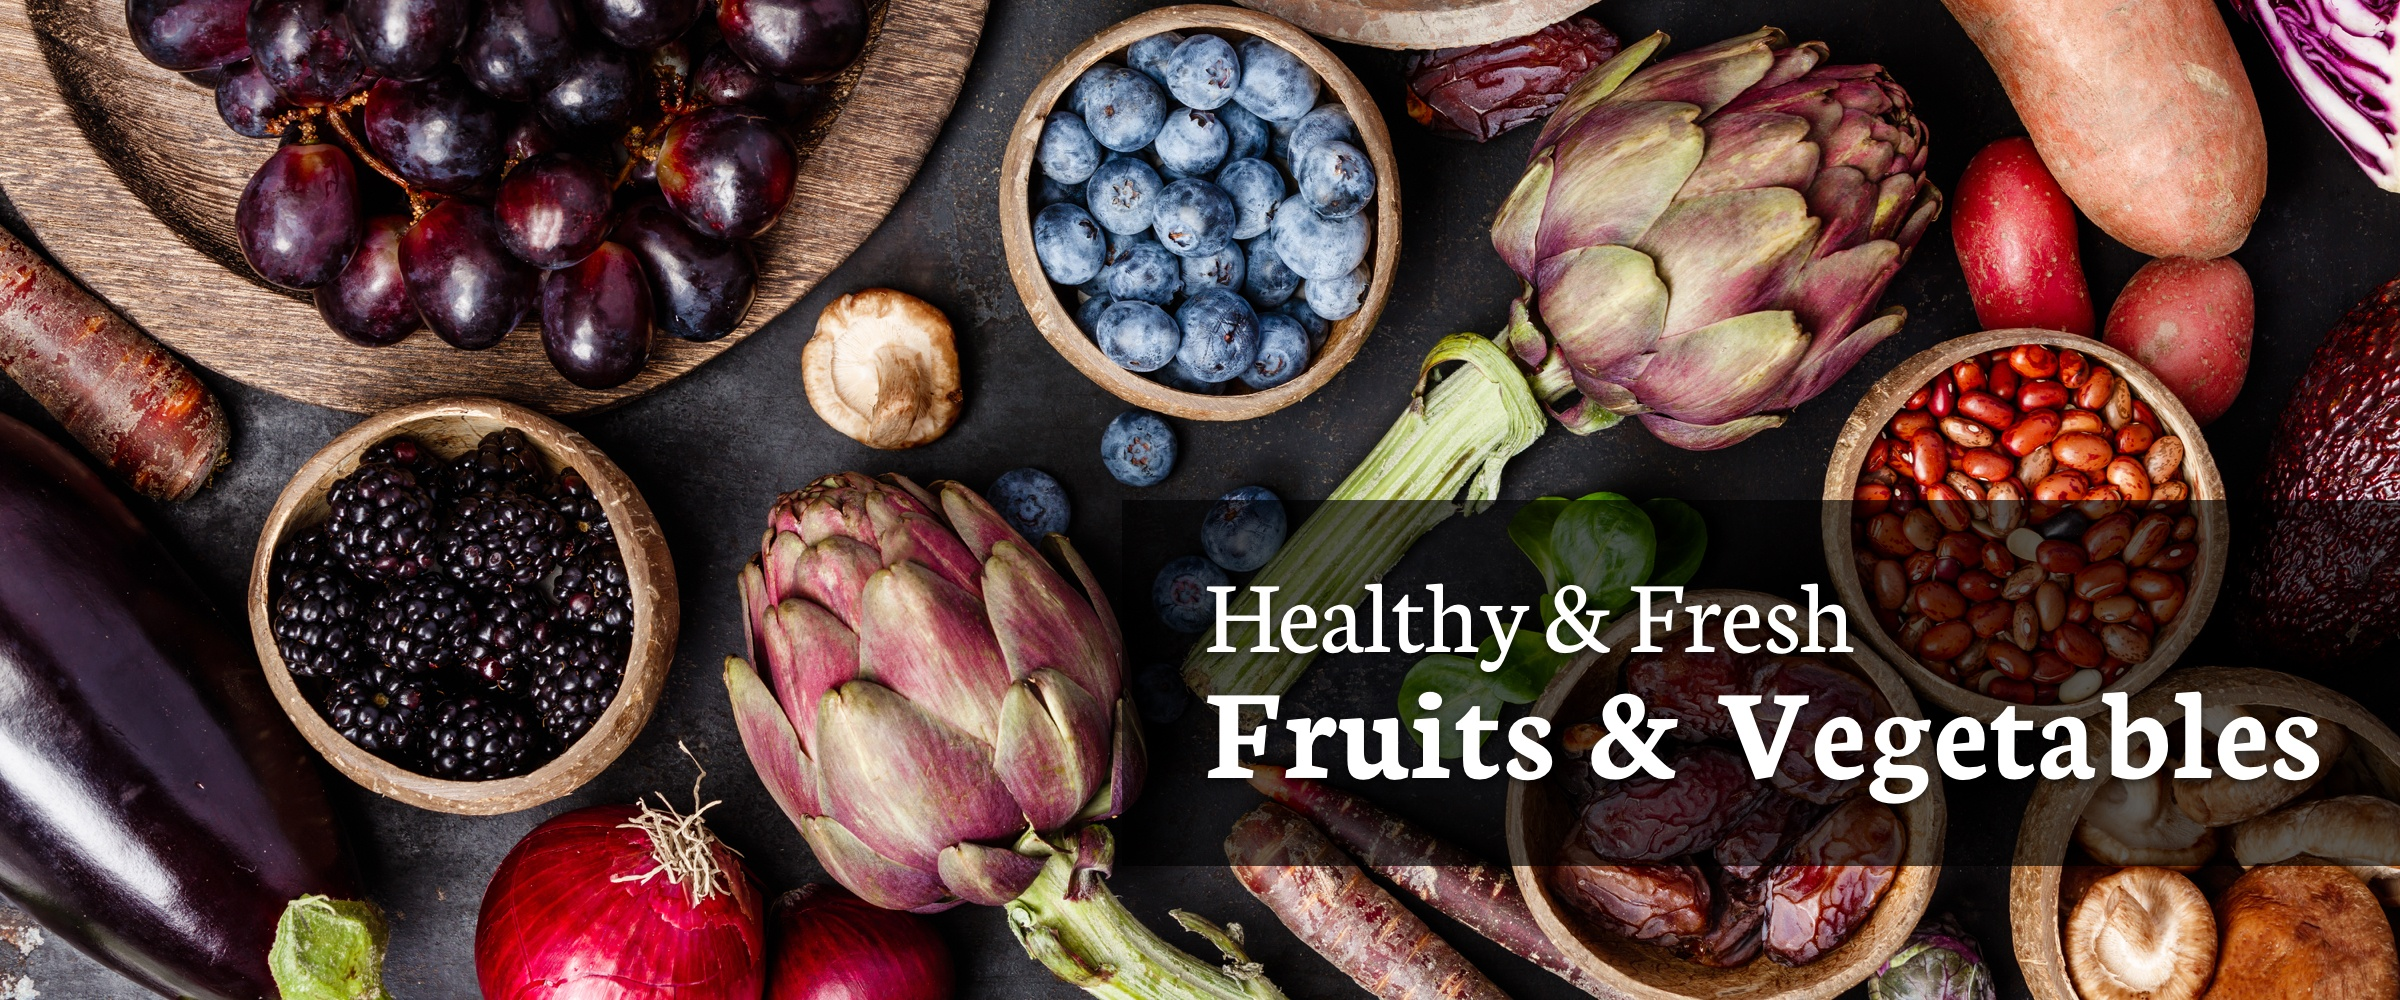 Healthy & Fresh Fruits & Vegetables